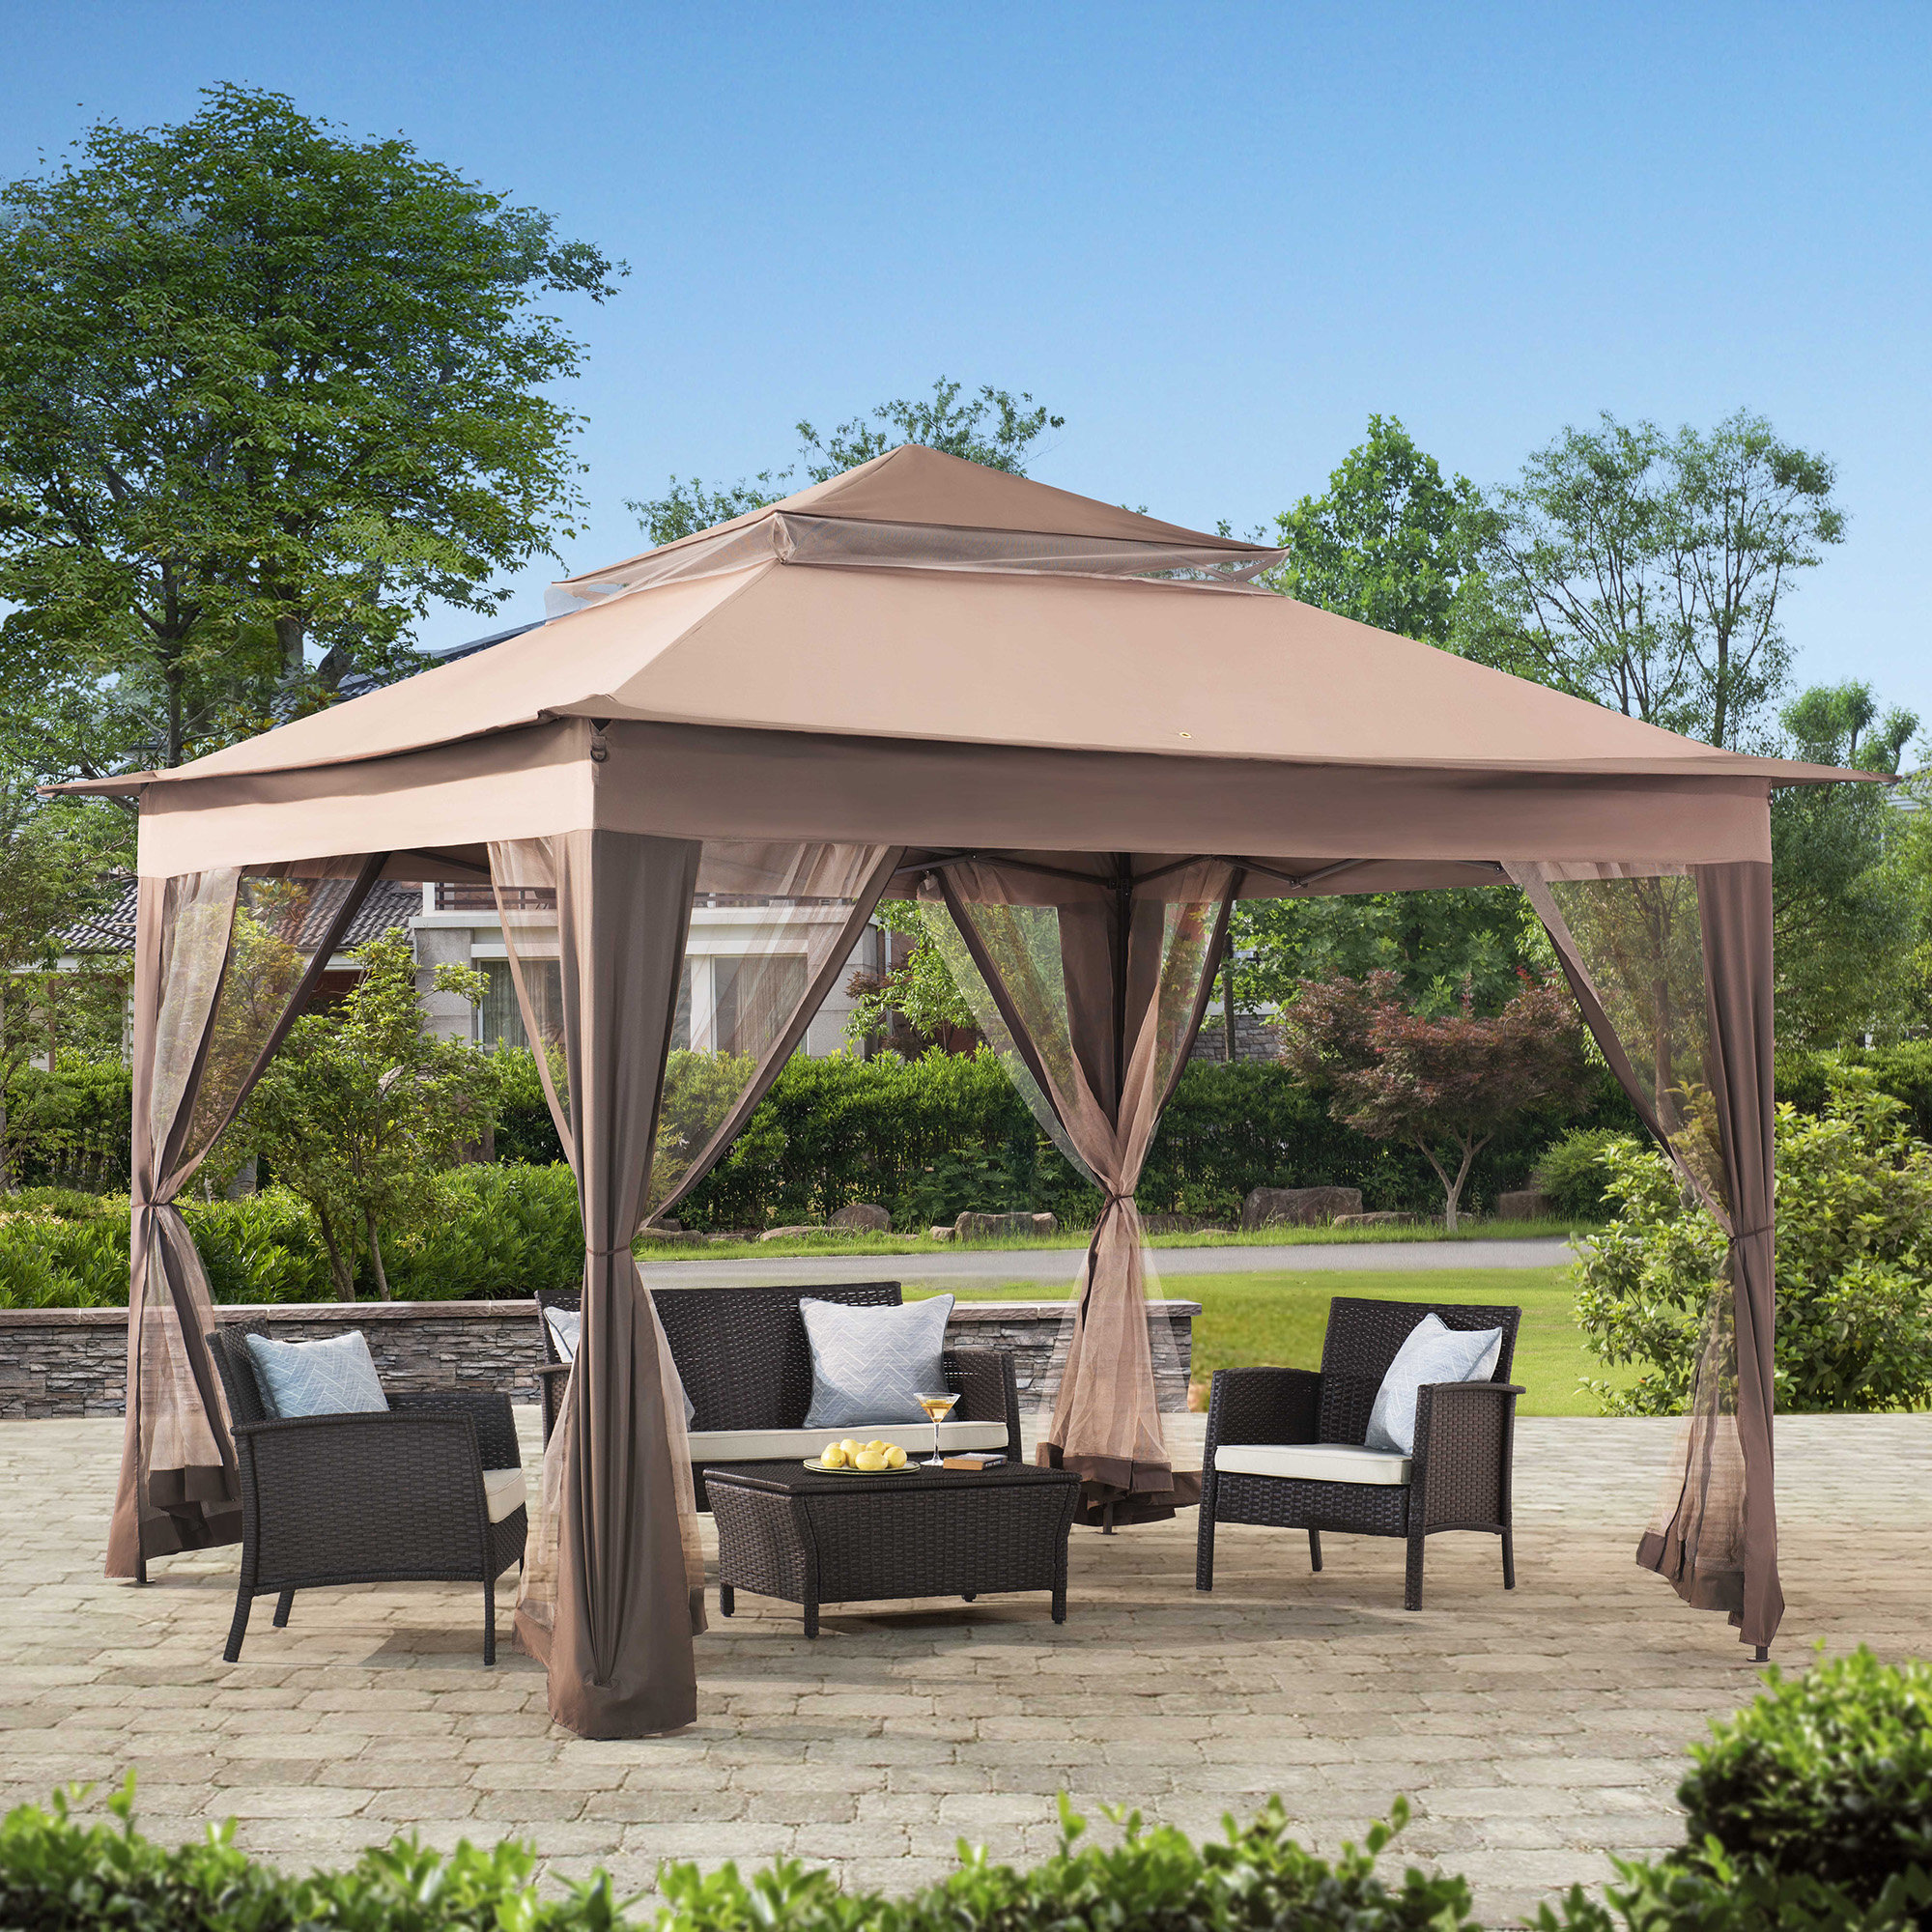 Choosing Patio Gazebo For Your Outdoor